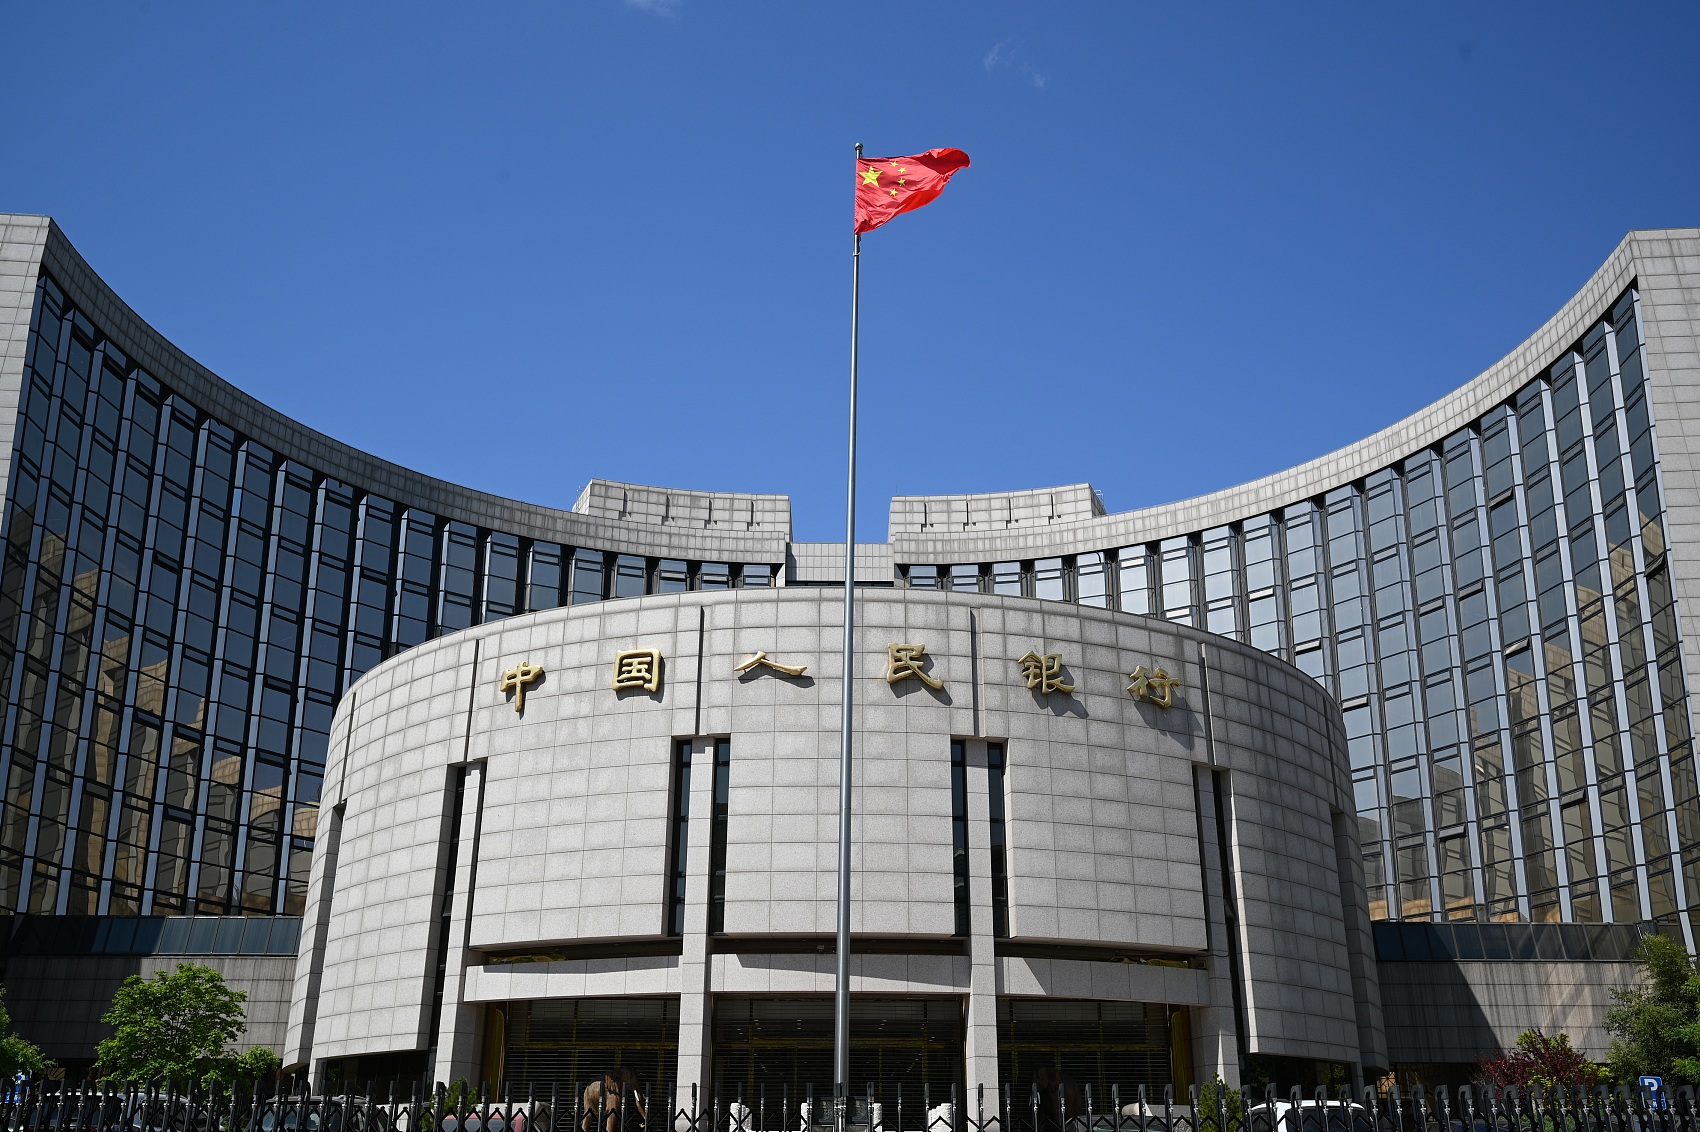 China central bank continues to inject liquidity via reverse repos